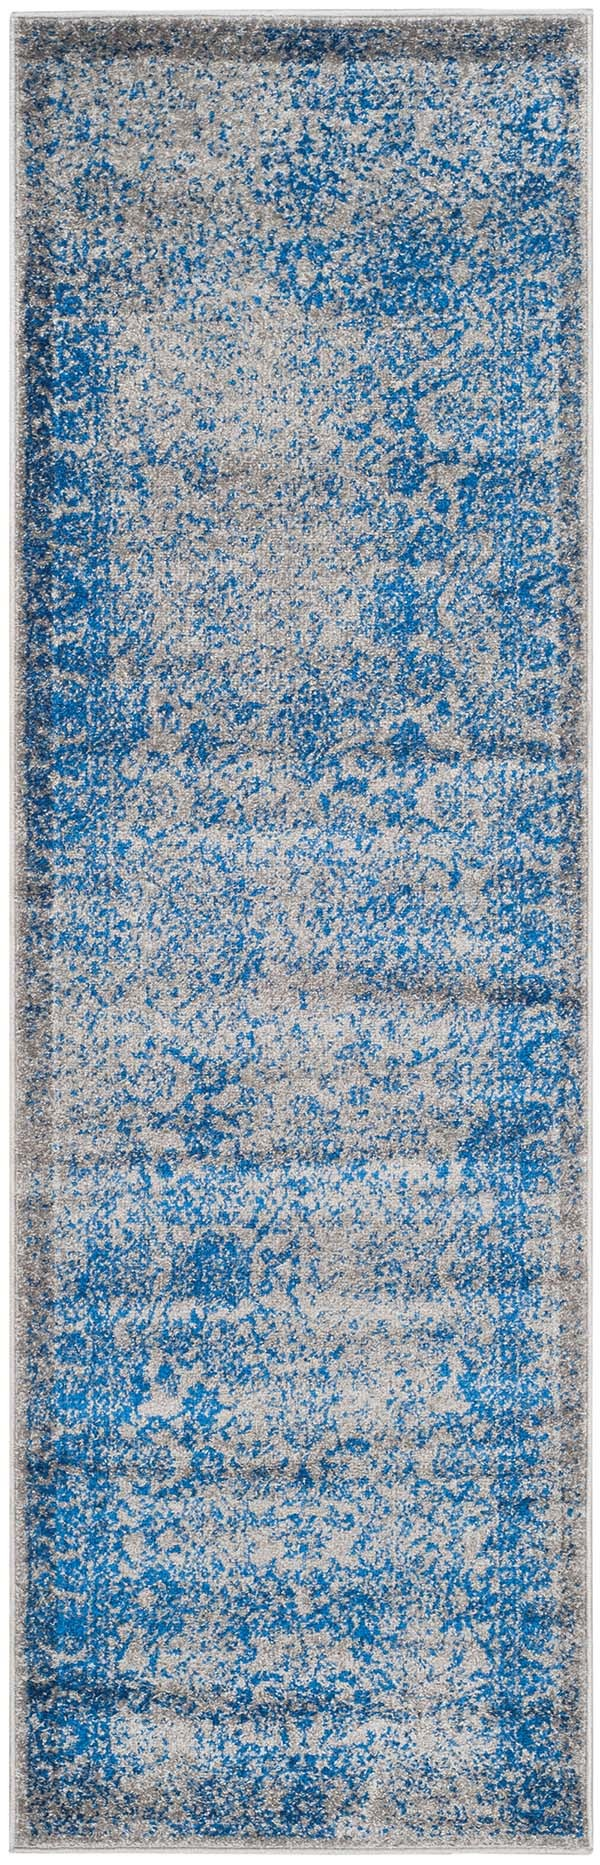 Grey, Blue (A) Vintage / Overdyed Area Rug